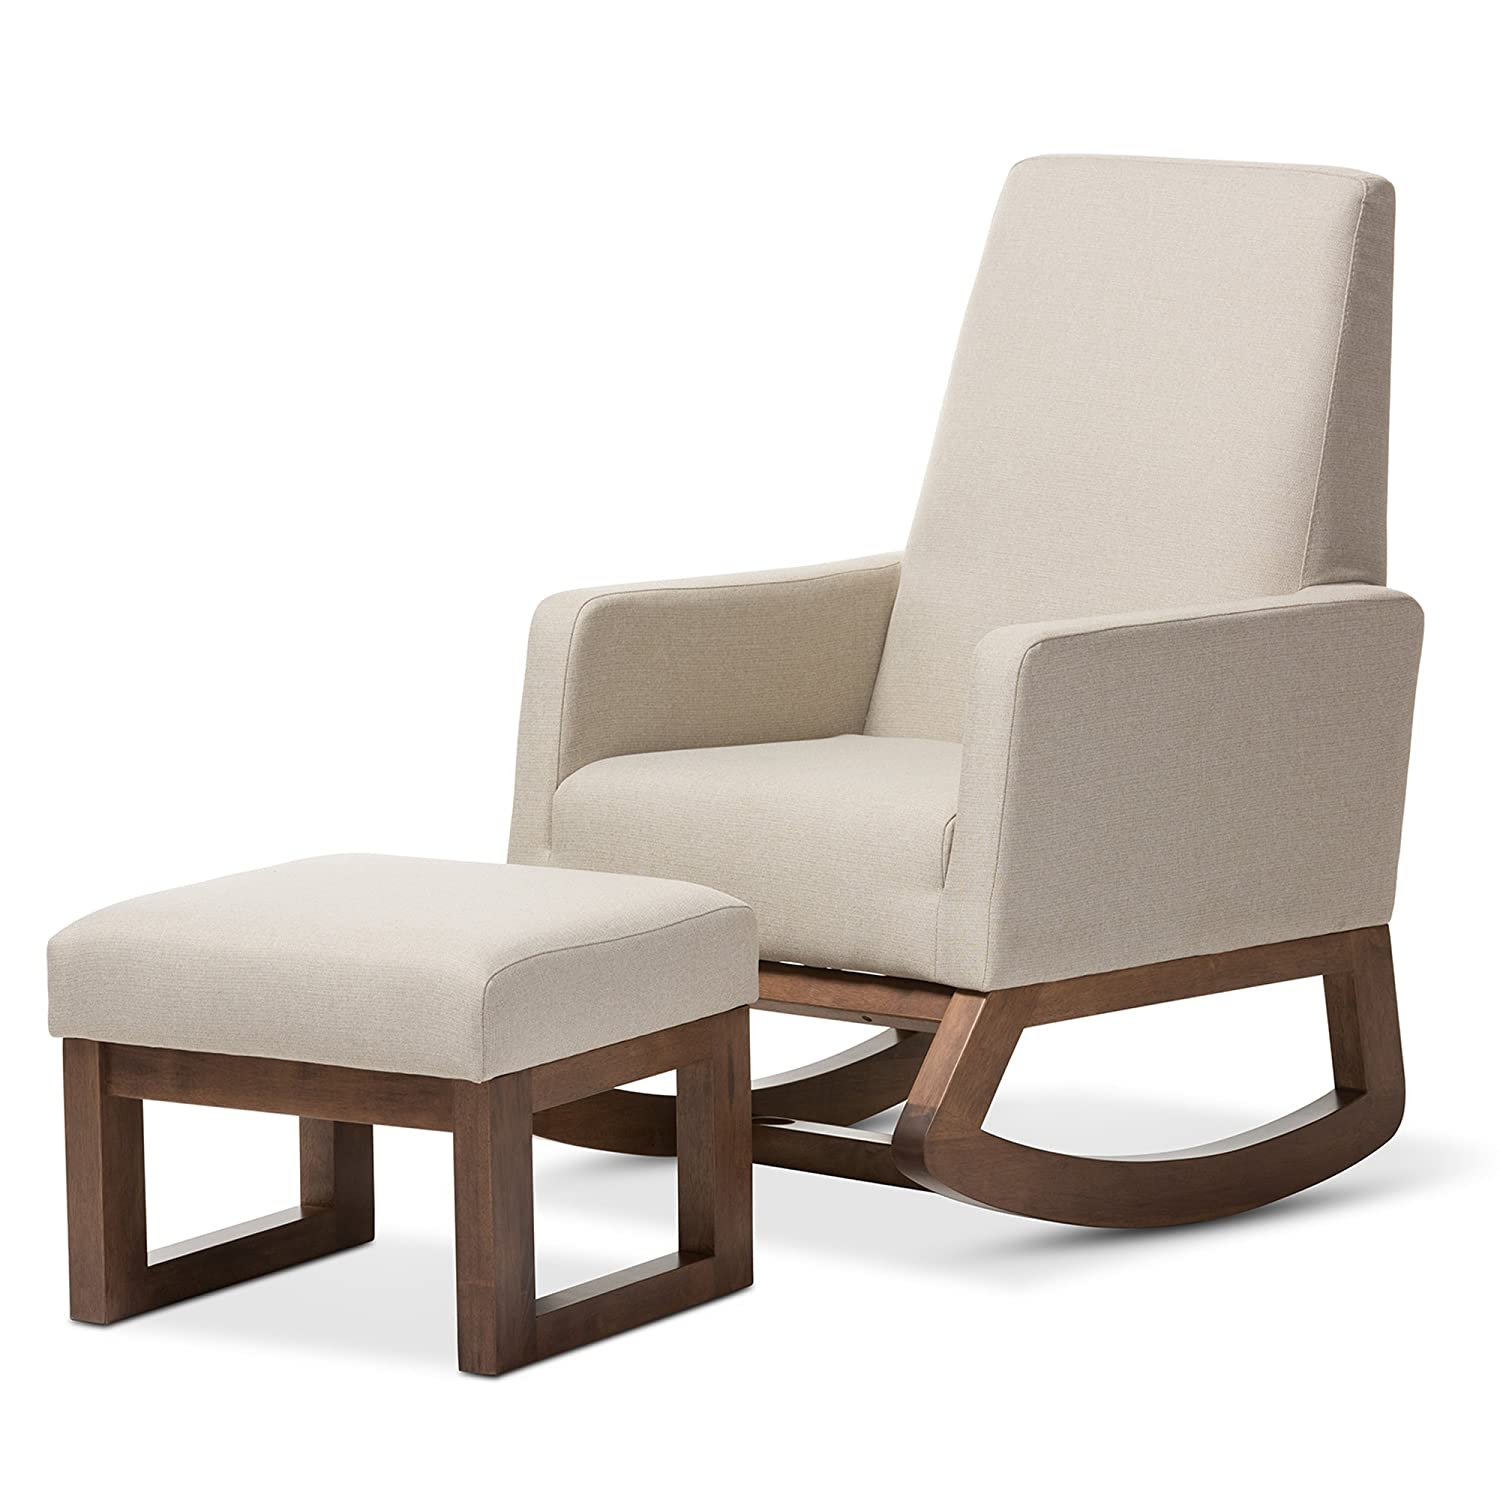 Amazon.com: Baxton Studio Yashiya Mid Century Retro Modern Fabric  Upholstered Rocking Chair And Ottoman Set, Light Beige: Kitchen U0026 Dining